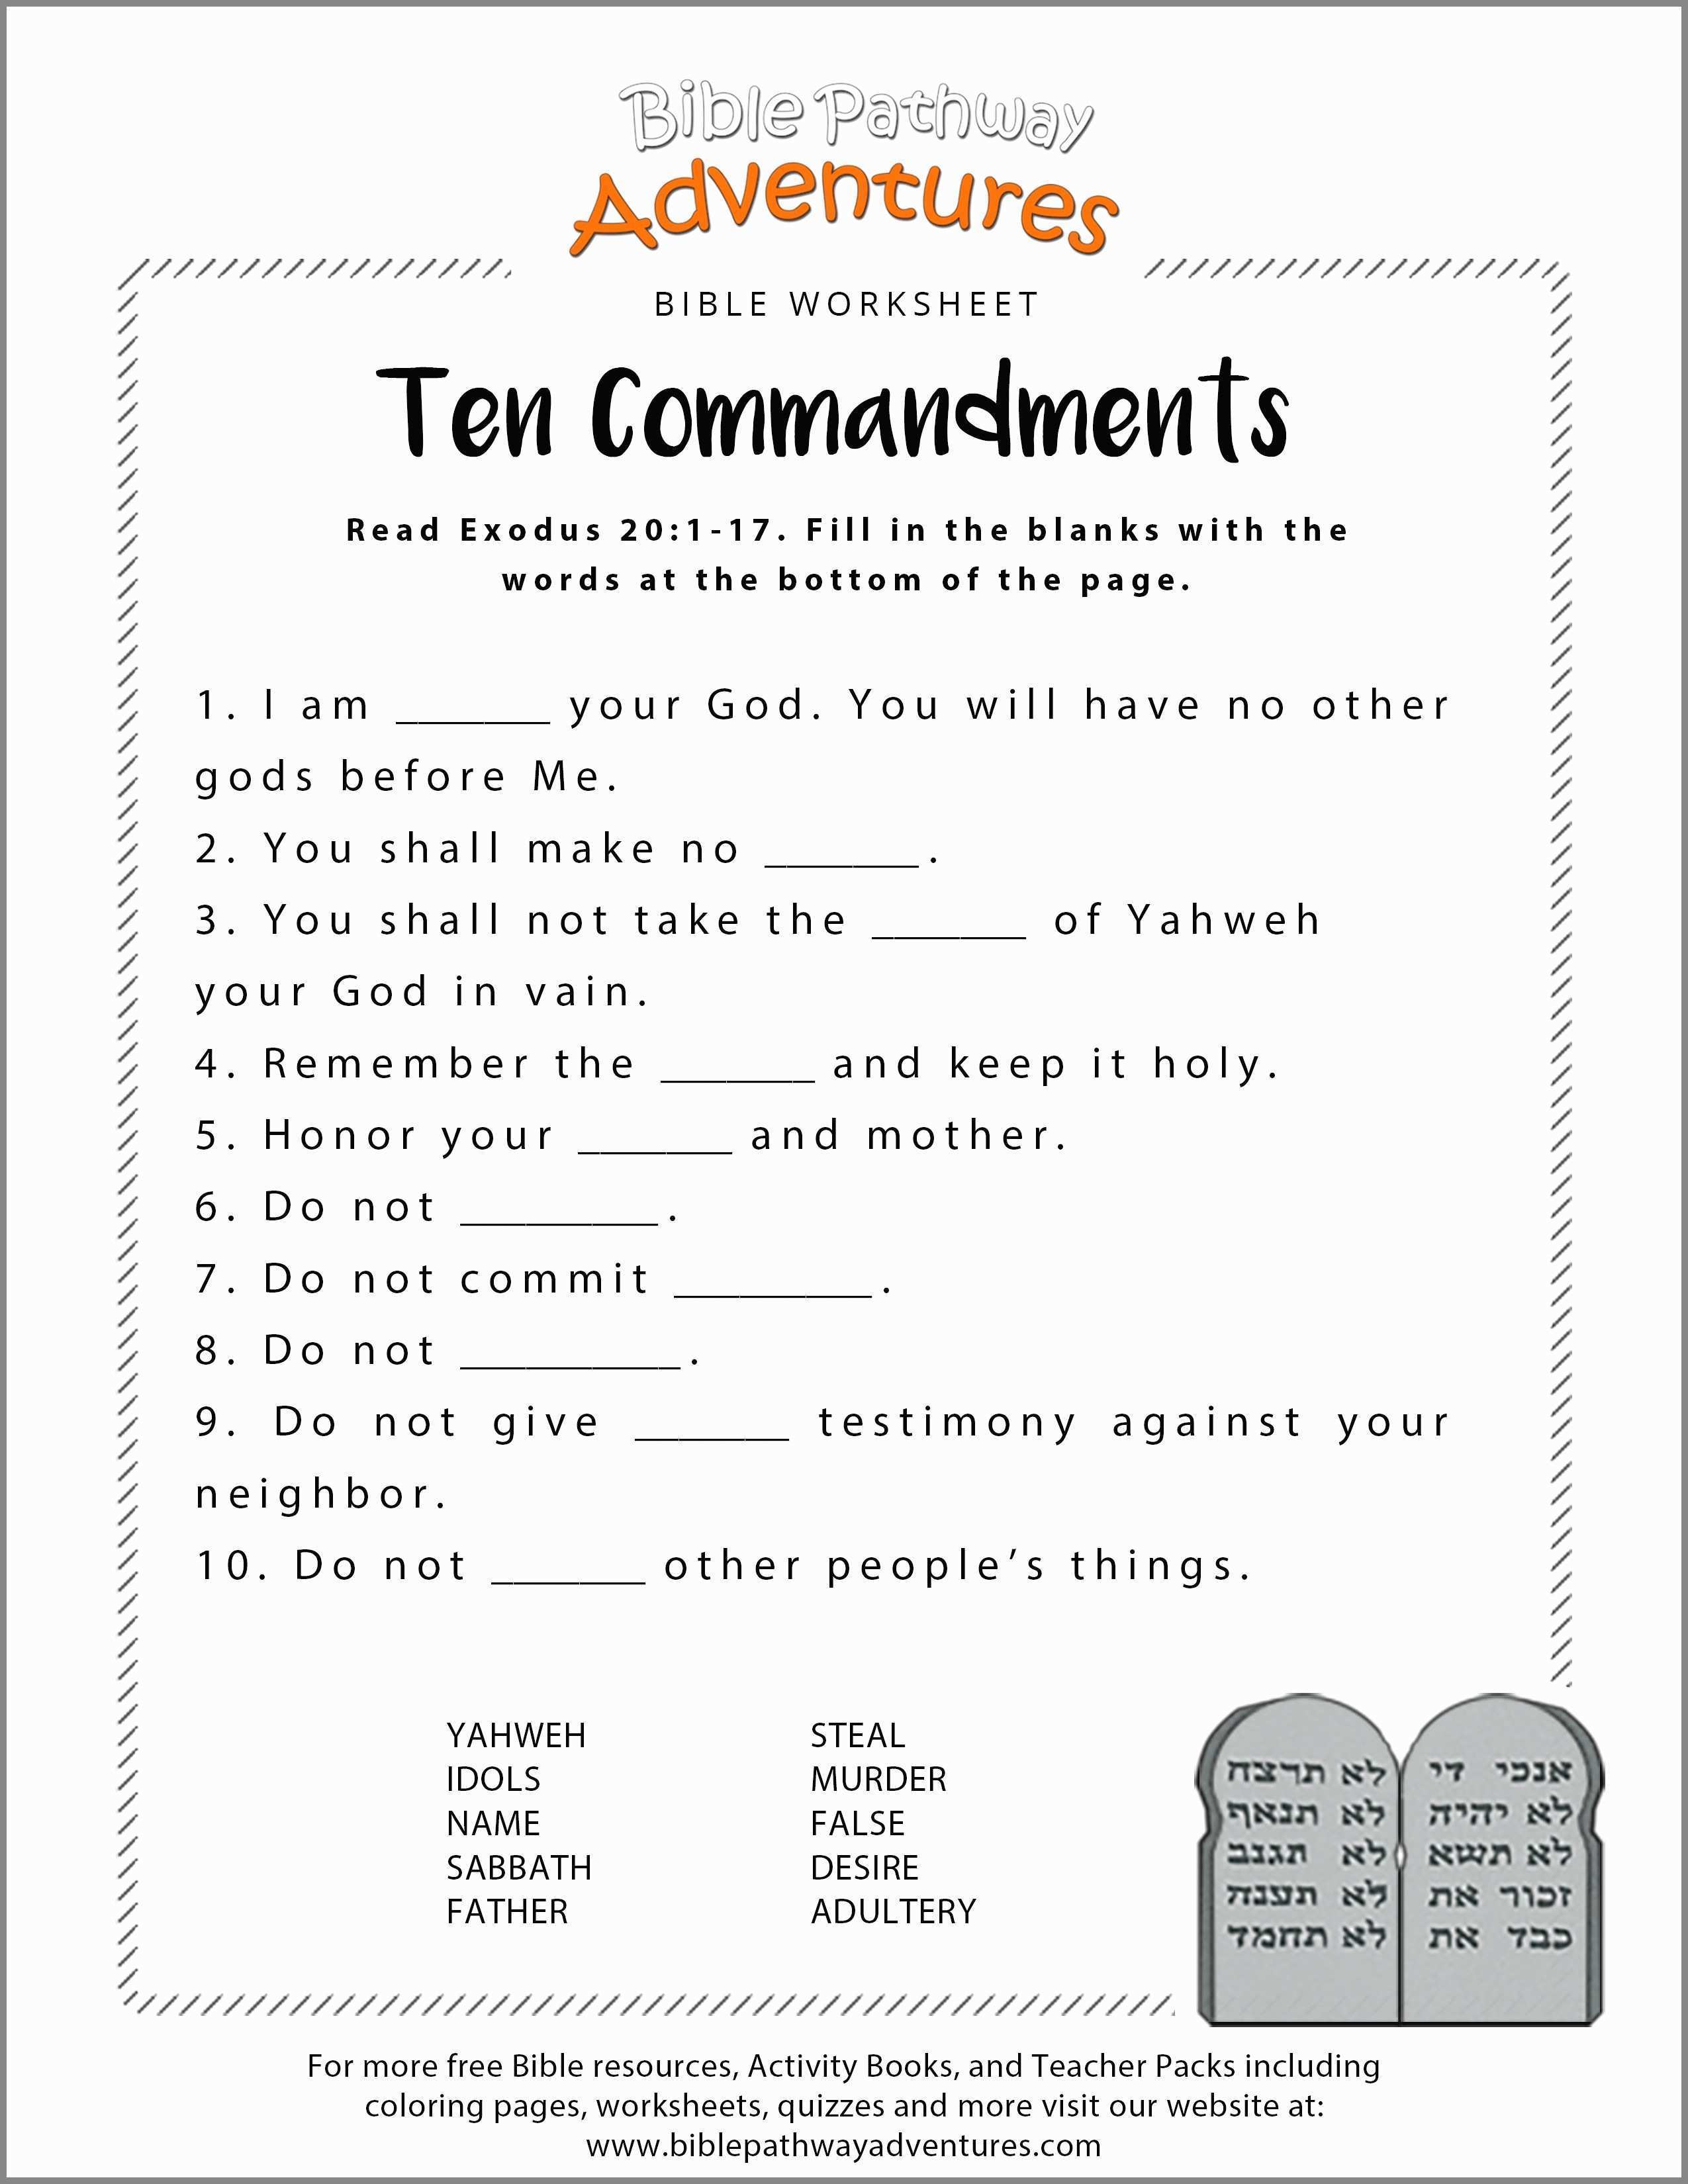 Bible Study Lessons With Questions And Answers New Bible And Prayer - Free Printable Bible Study Lessons With Questions And Answers